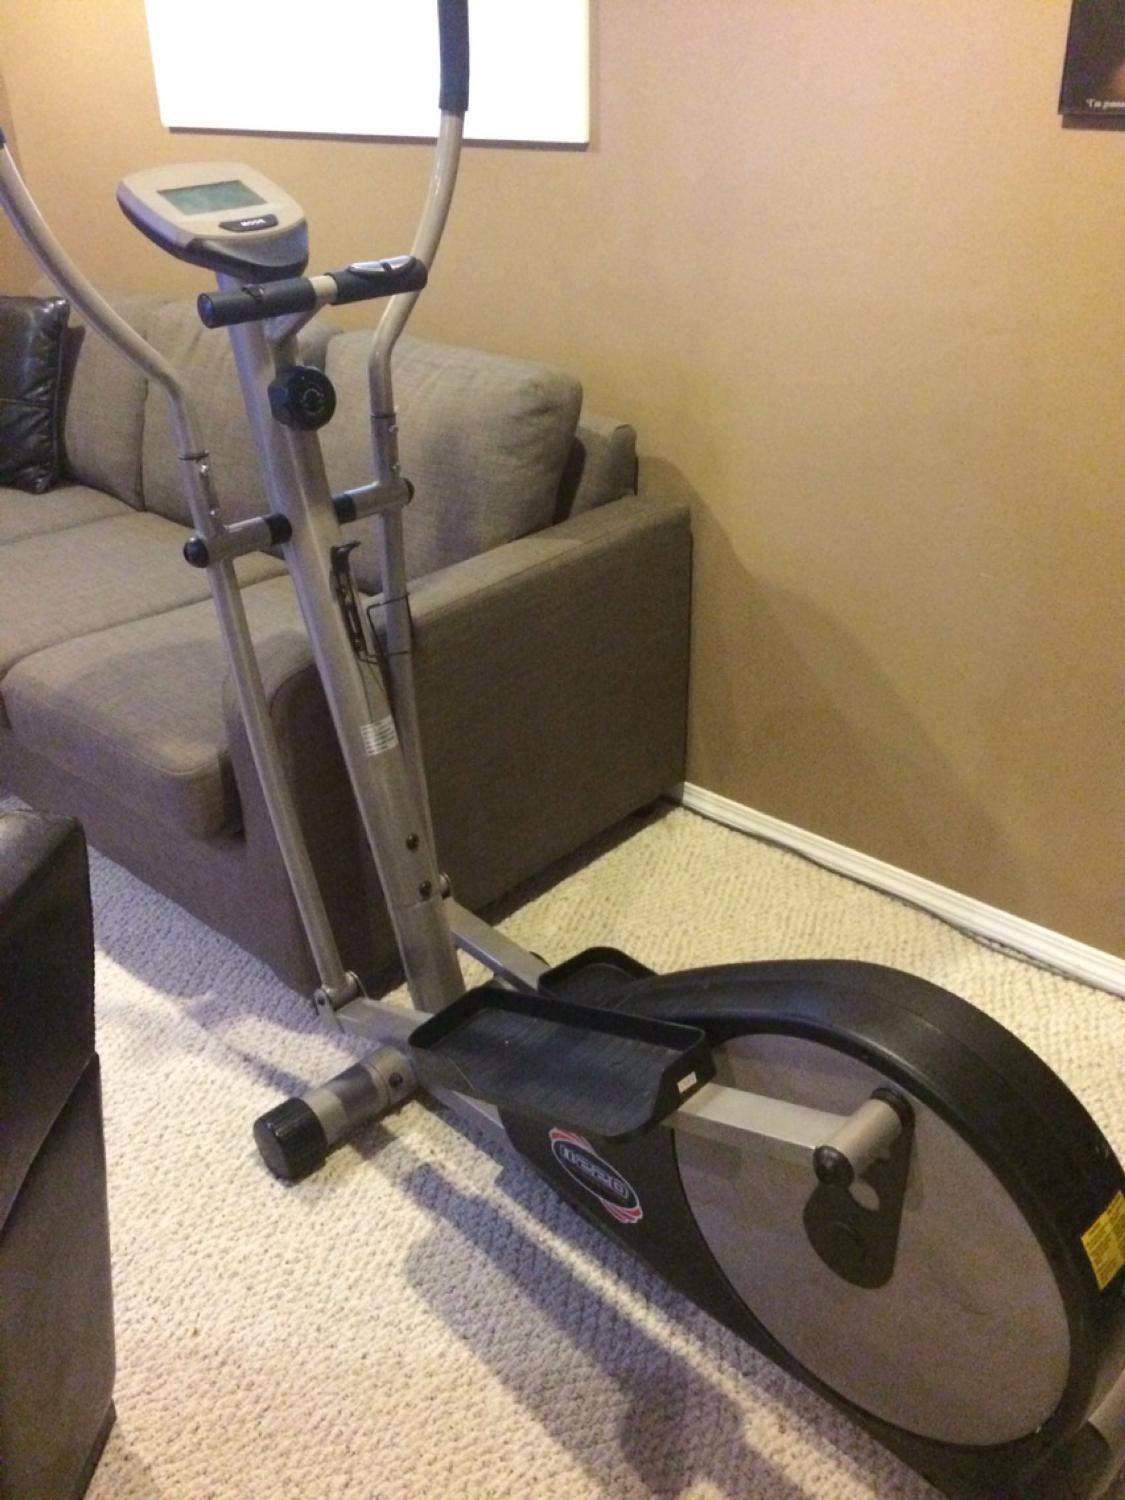 Find More Sportek Ee220 Deluxe Magnetic Elliptical Machine For Sale At Up To 90 Off Because it was broken, i've been searching on internet but i didn't find any website about it. sportek ee220 deluxe magnetic elliptical machine